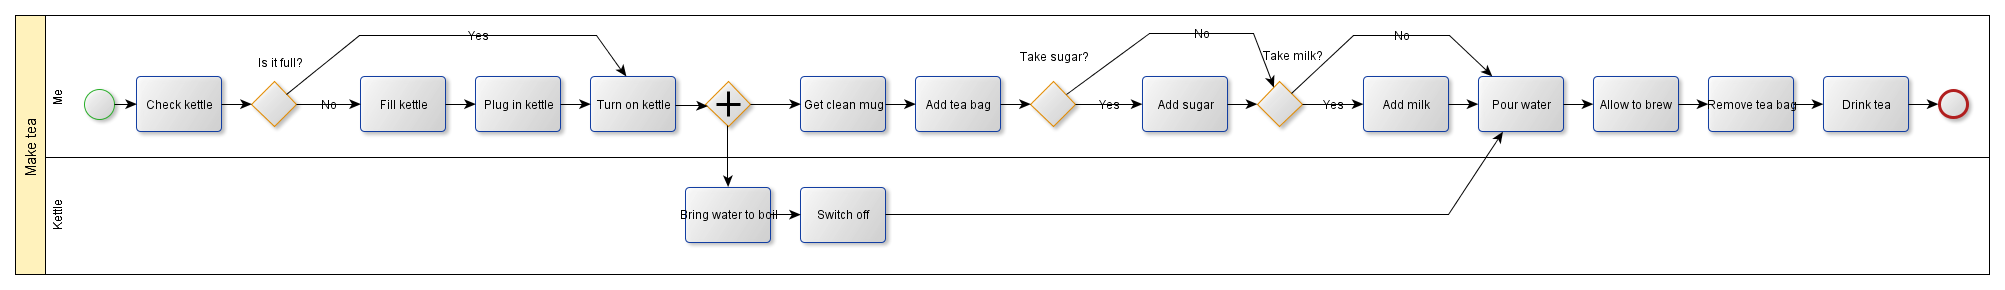 Process map for making tea